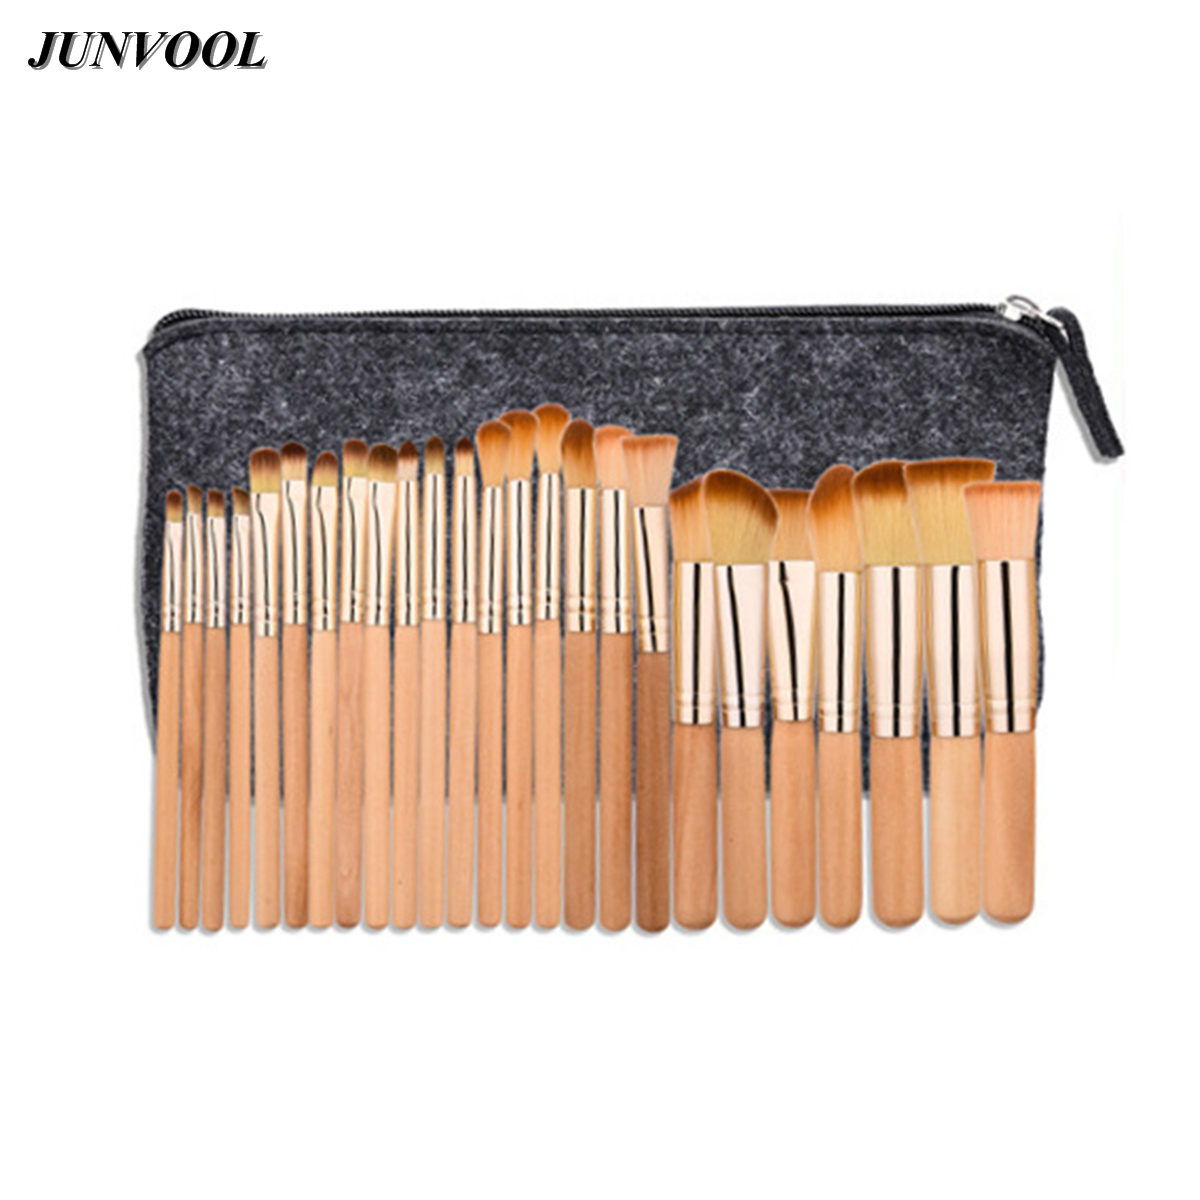 Brown Beauty Make Up Brushes Set 25 unids Fundación Colorete Powder Eyeshadow Bl